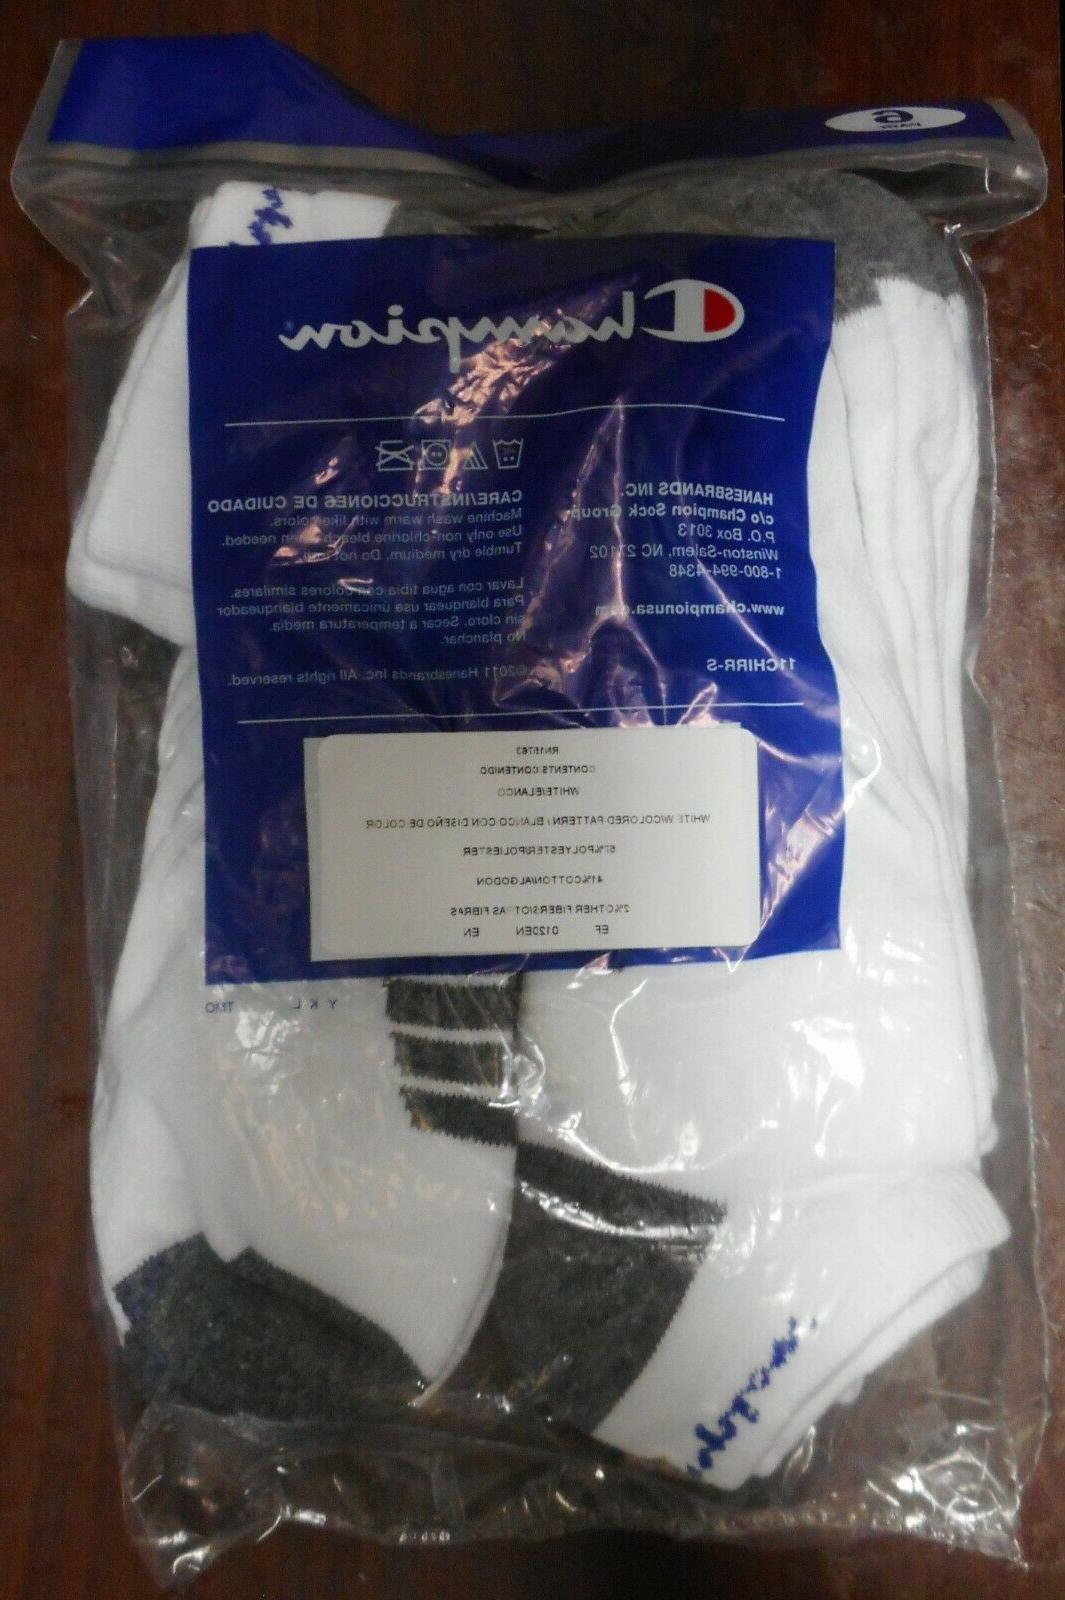 CHAMPION PAIR OF MENS CUT SOCKS SIZE 6-12****